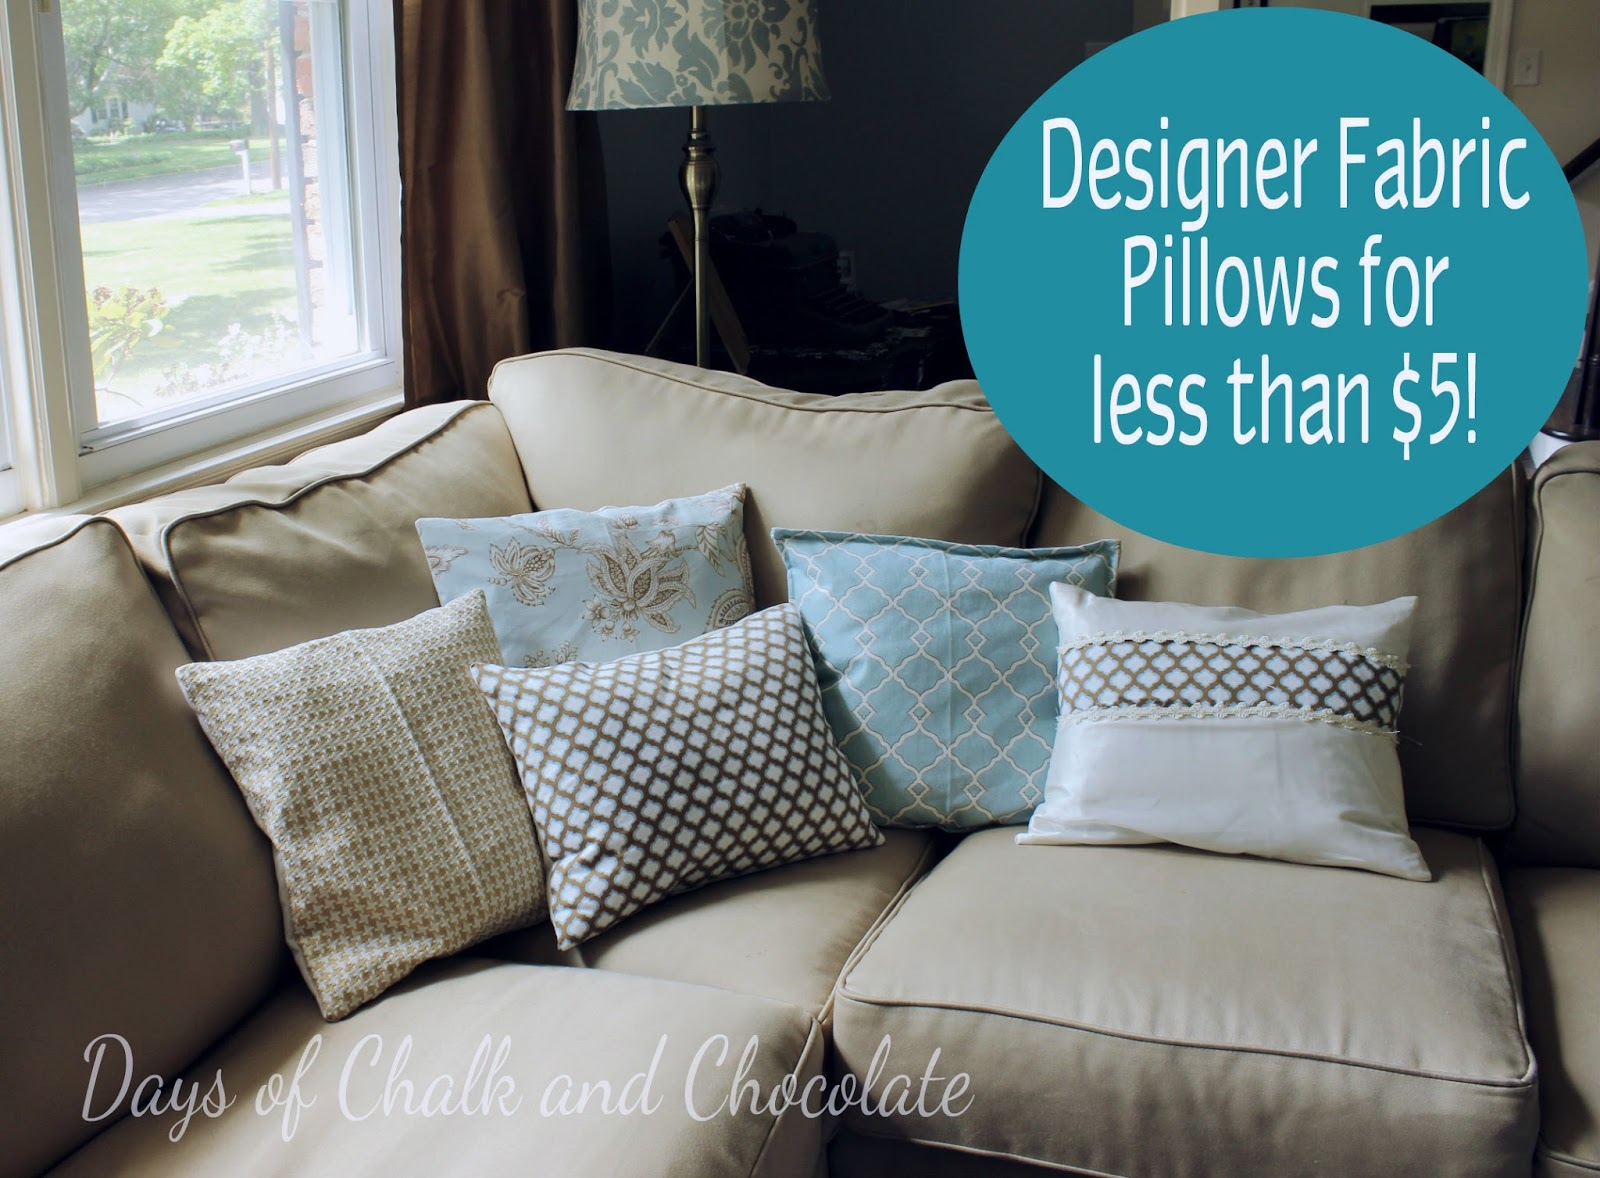 How I Get Designer Fabric Pillows For $5 Or Less